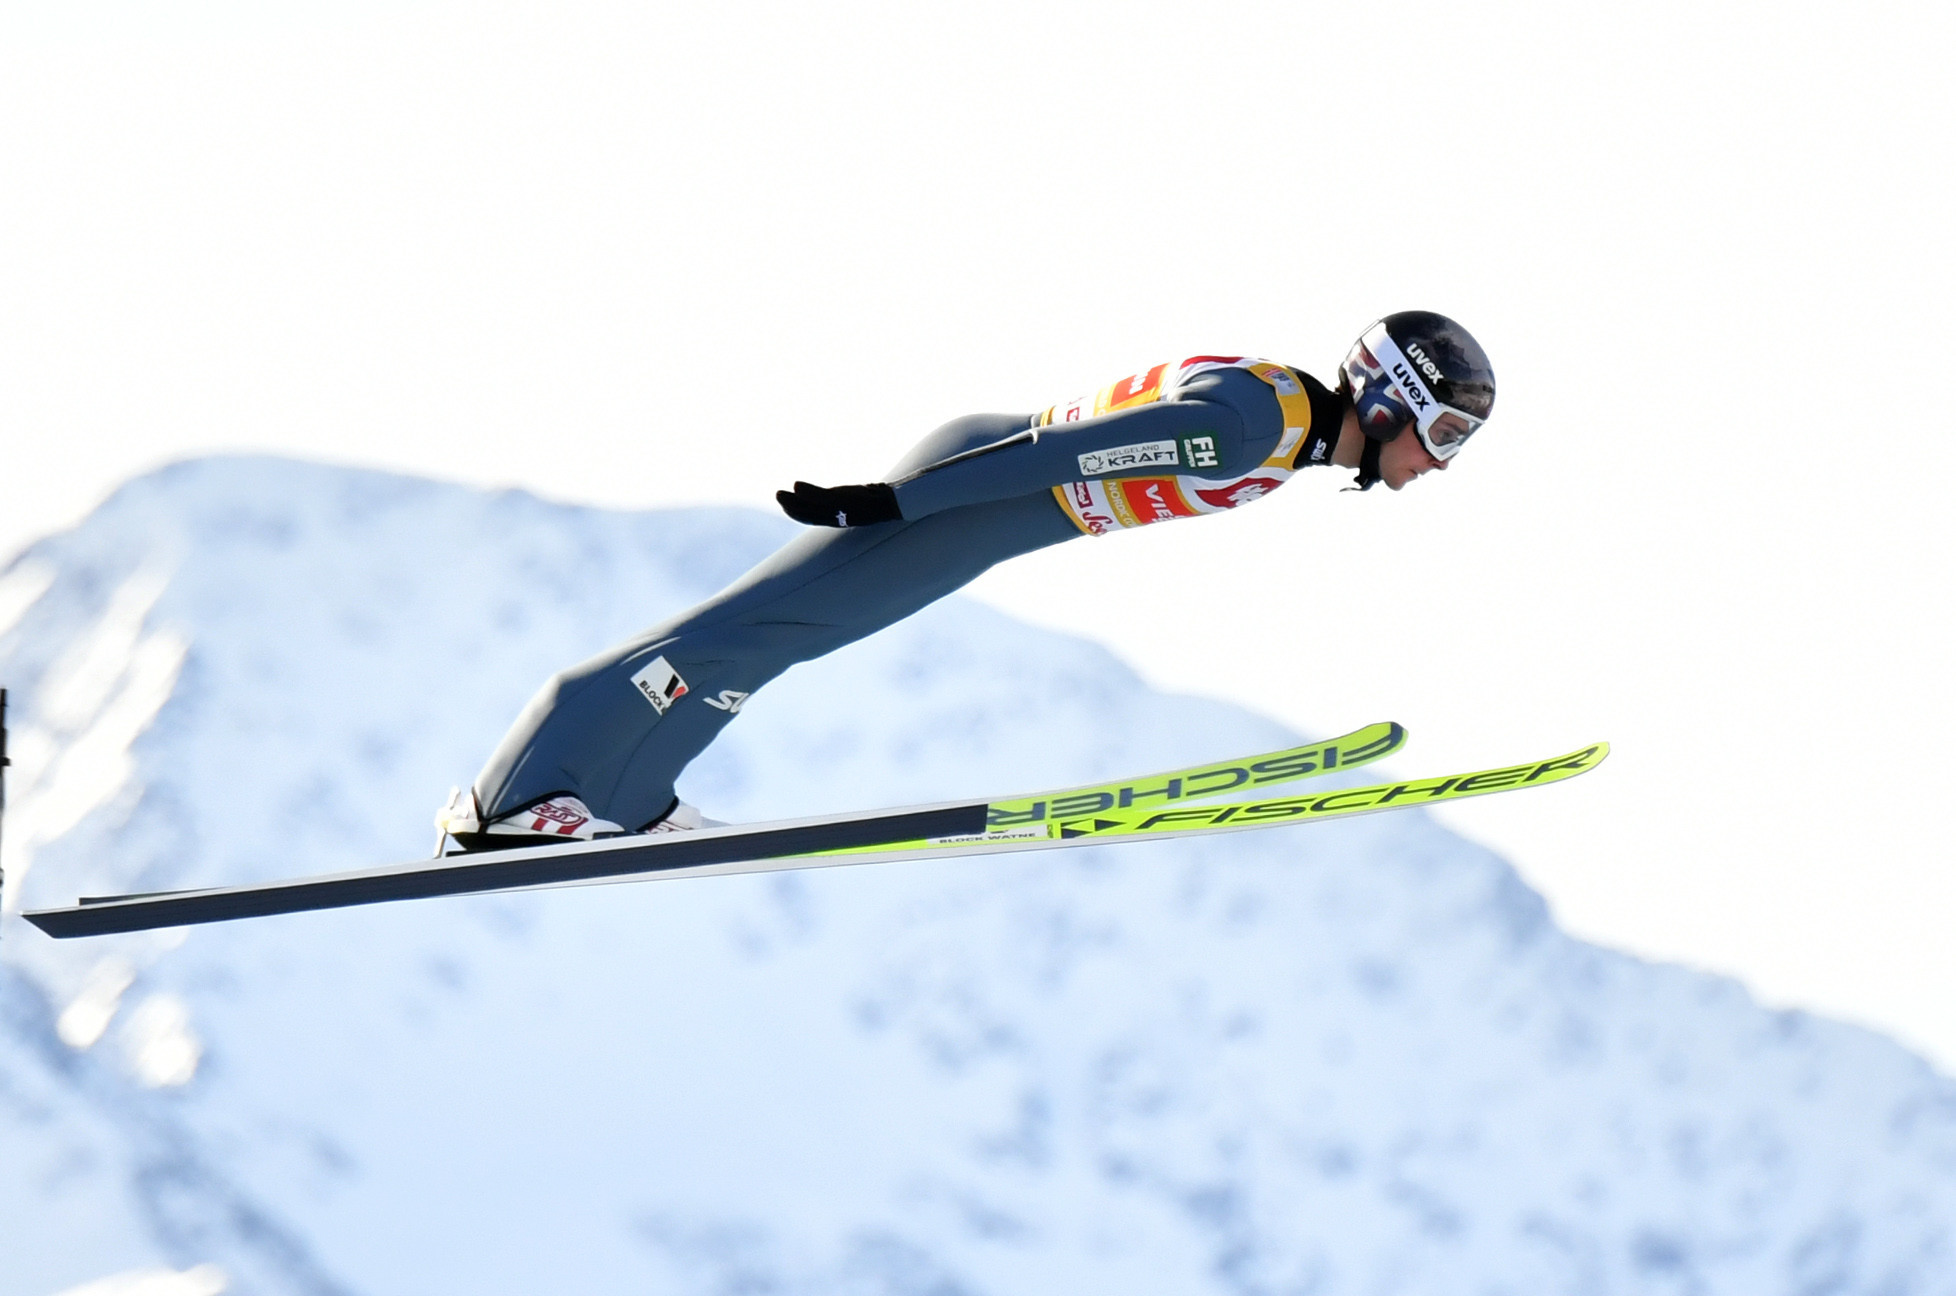 The Norwegian topped the standings after the ski jumping round in Seefeld ©Getty Images